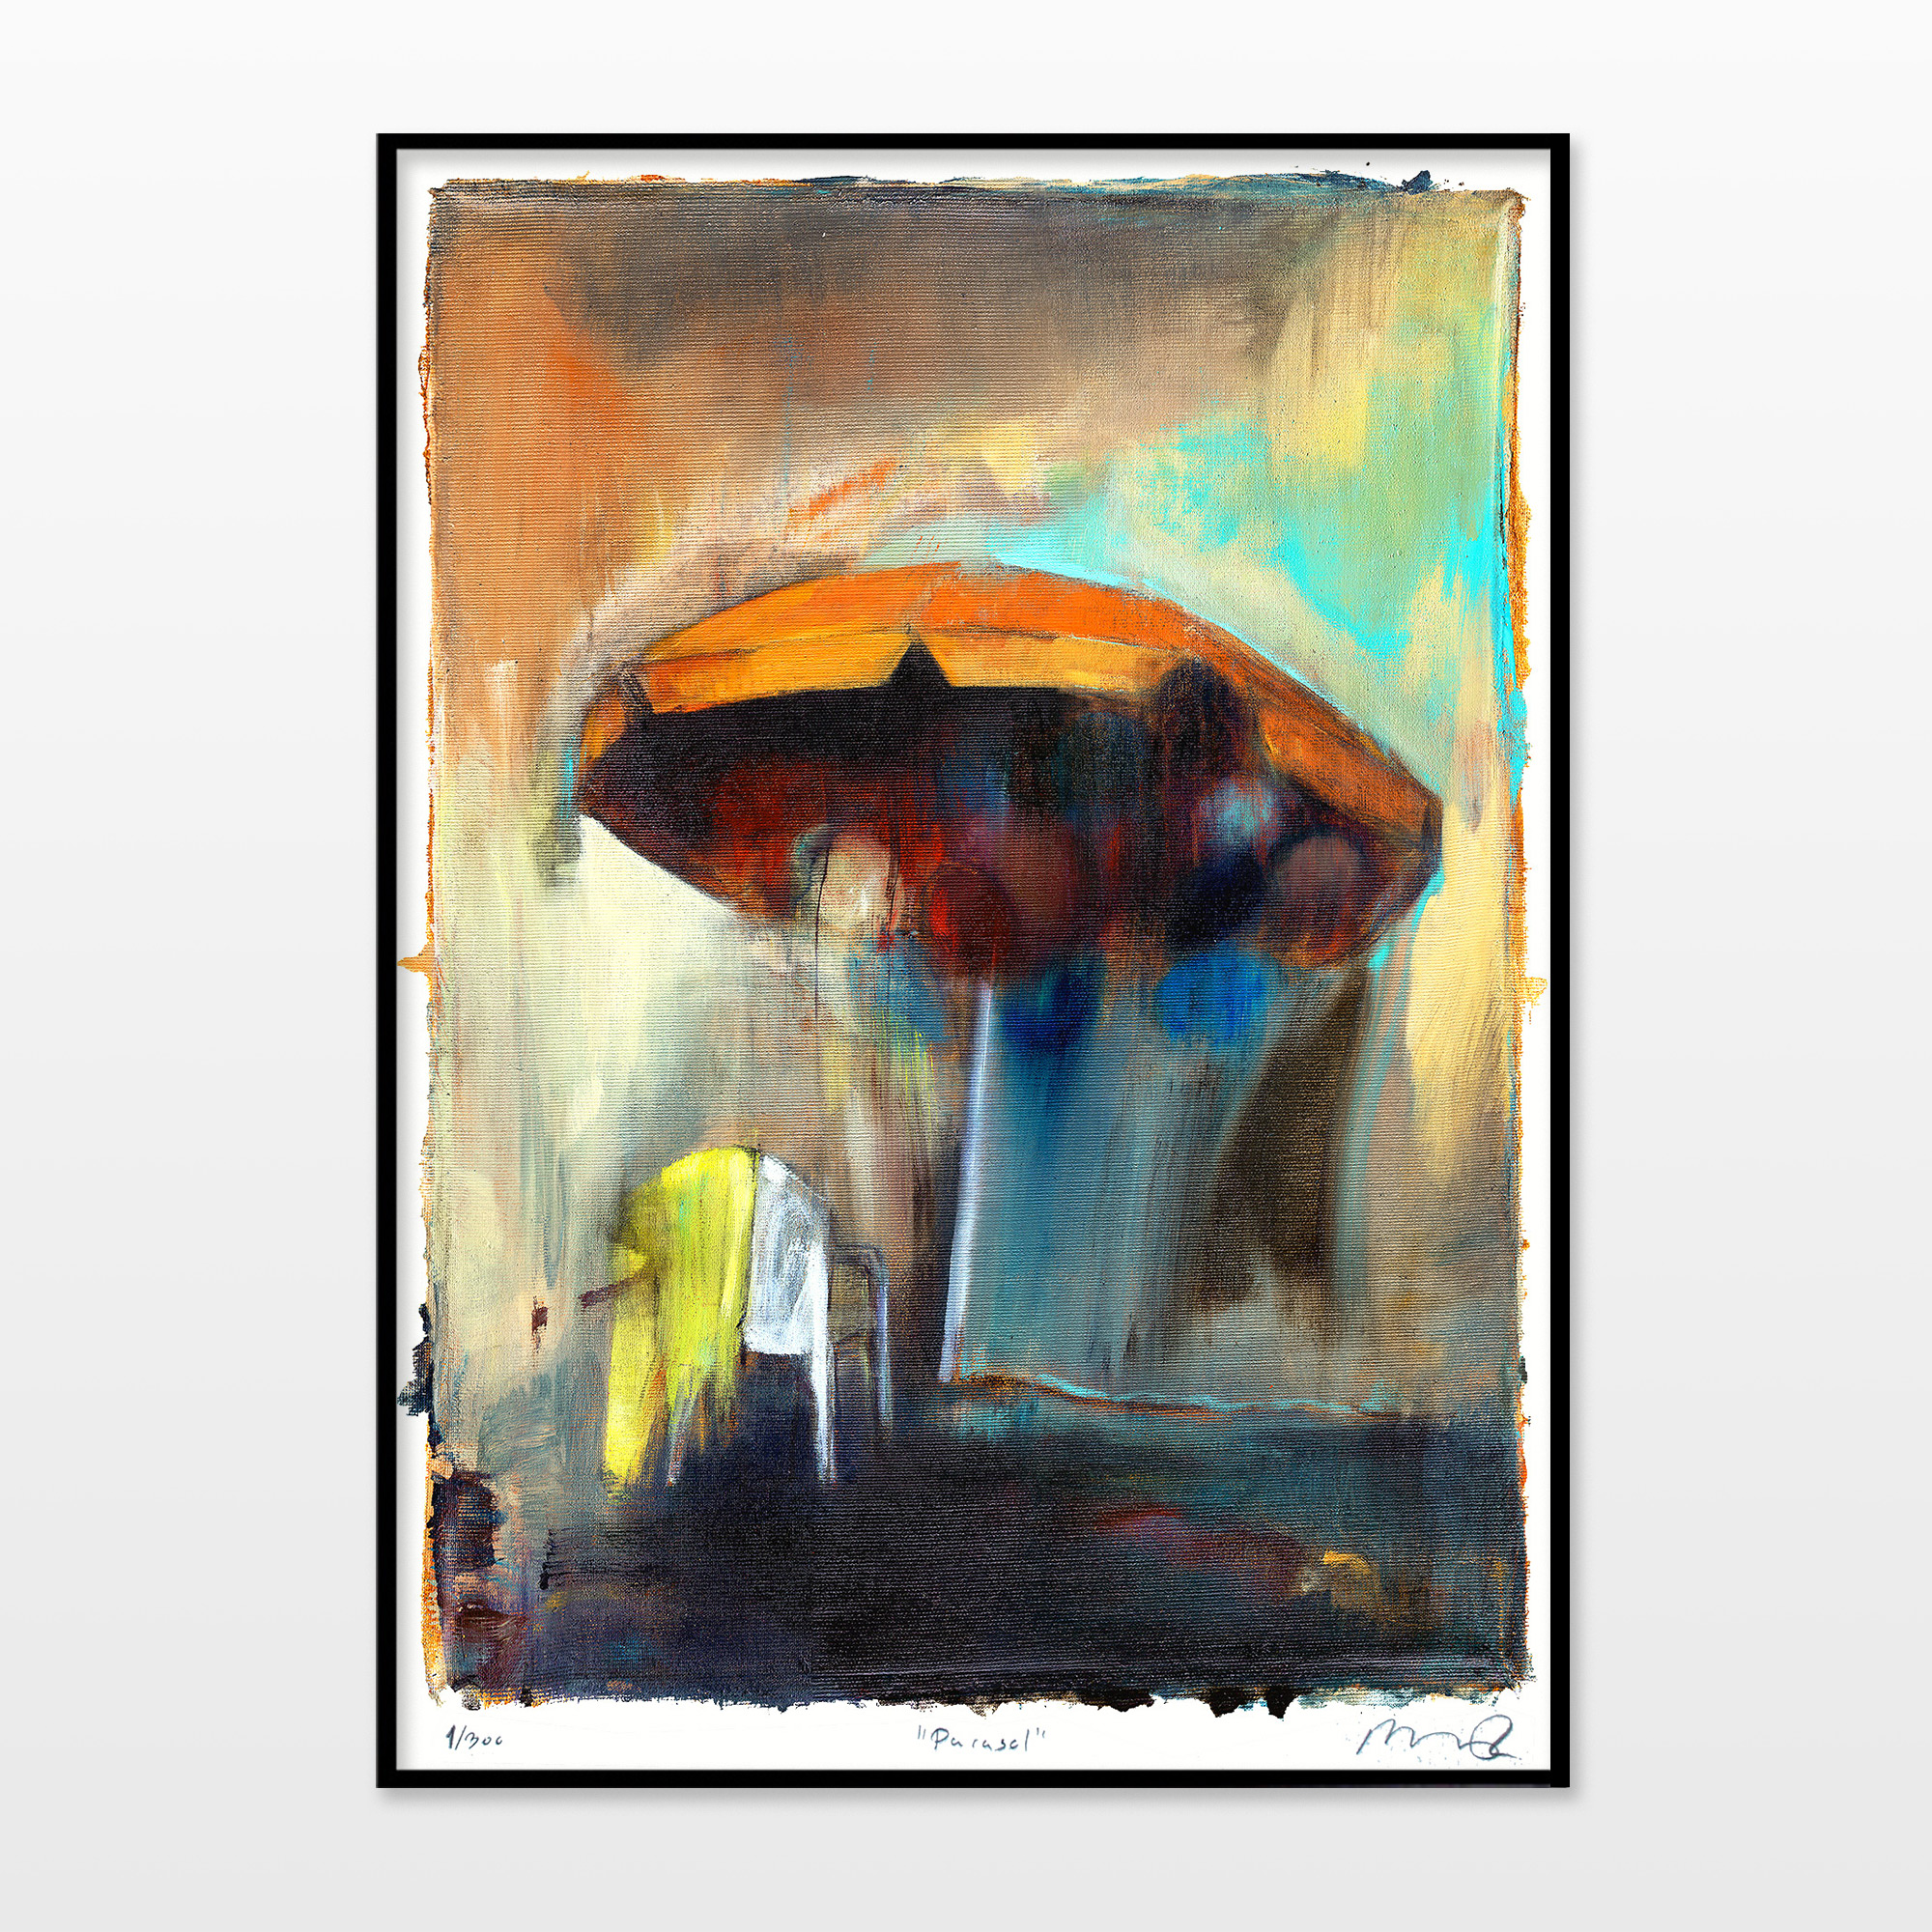 posters-prints, giclee-print, aesthetic, colorful, figurative, graphical, illustrative, landscape, botany, nature, oceans, sky, beige, black, blue, orange, turquoise, yellow, ink, paper, beach, beautiful, danish, decorative, design, female, interior, interior-design, nordic, plants, posters, pretty, scandinavien, summer, women, Buy original high quality art. Paintings, drawings, limited edition prints & posters by talented artists.